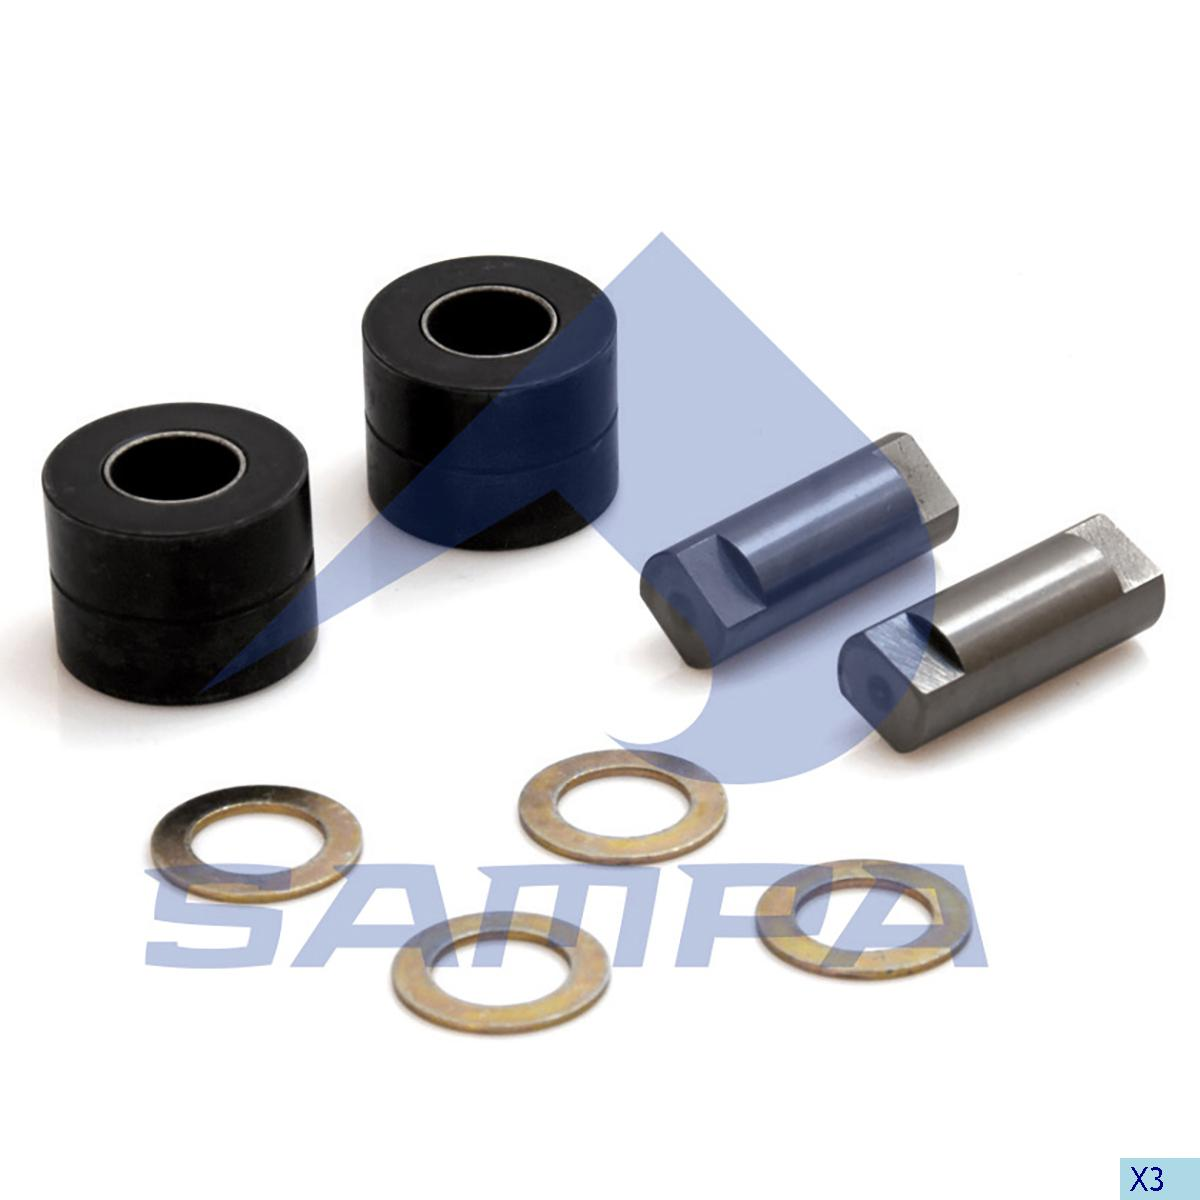 Repair Kit, Brake Shoe, Setra, Brake